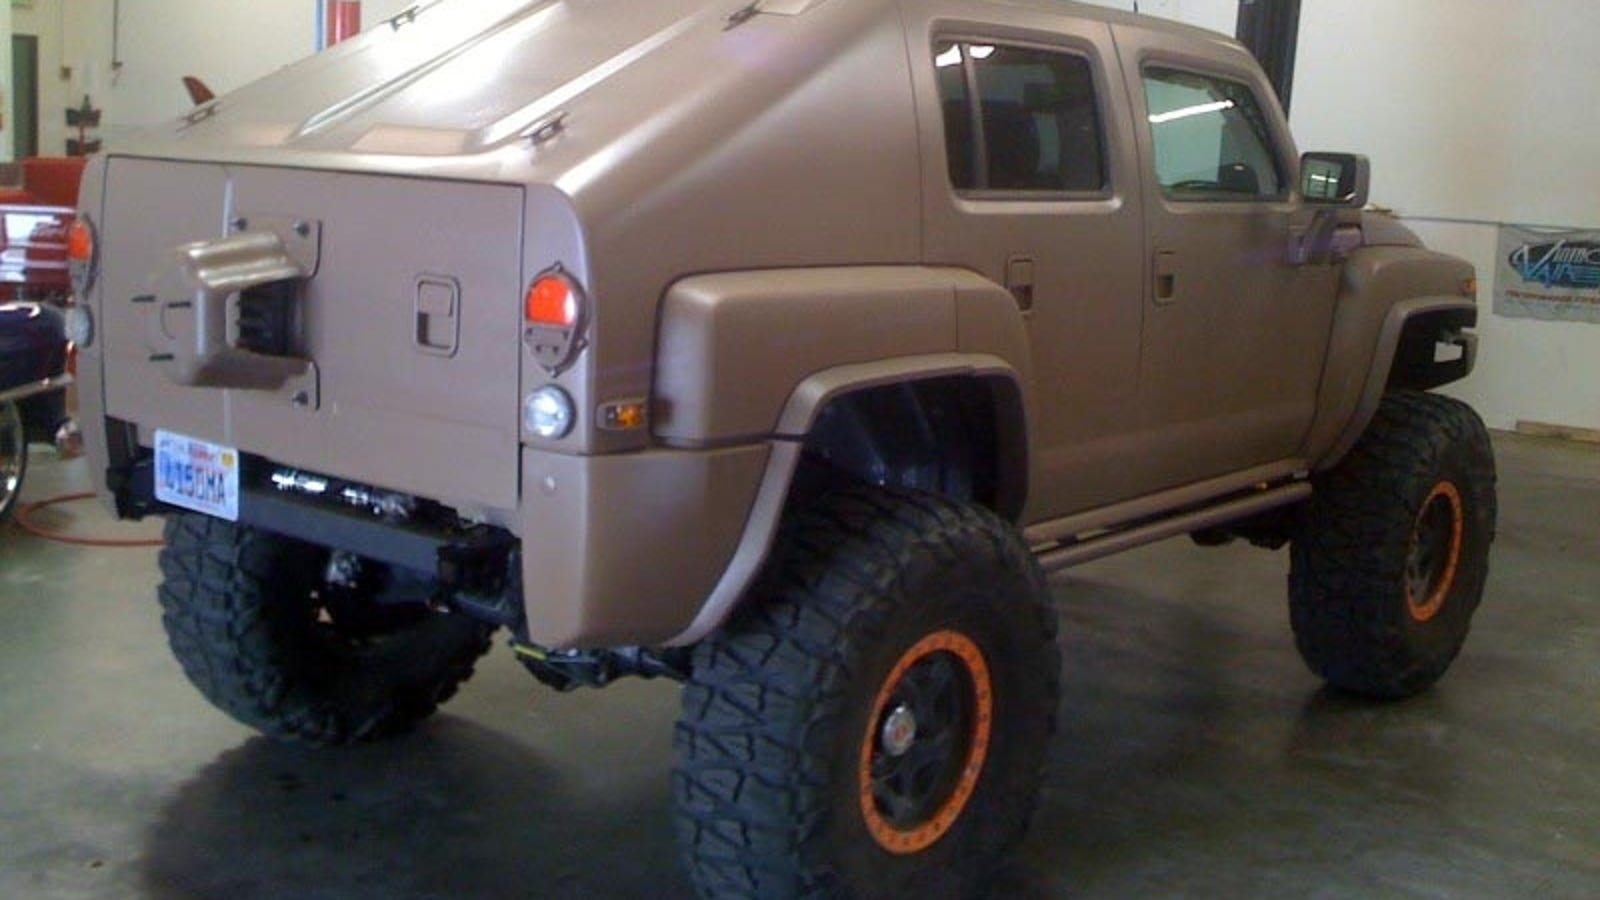 The H3 Recon Makes Other Hummers Look Lame